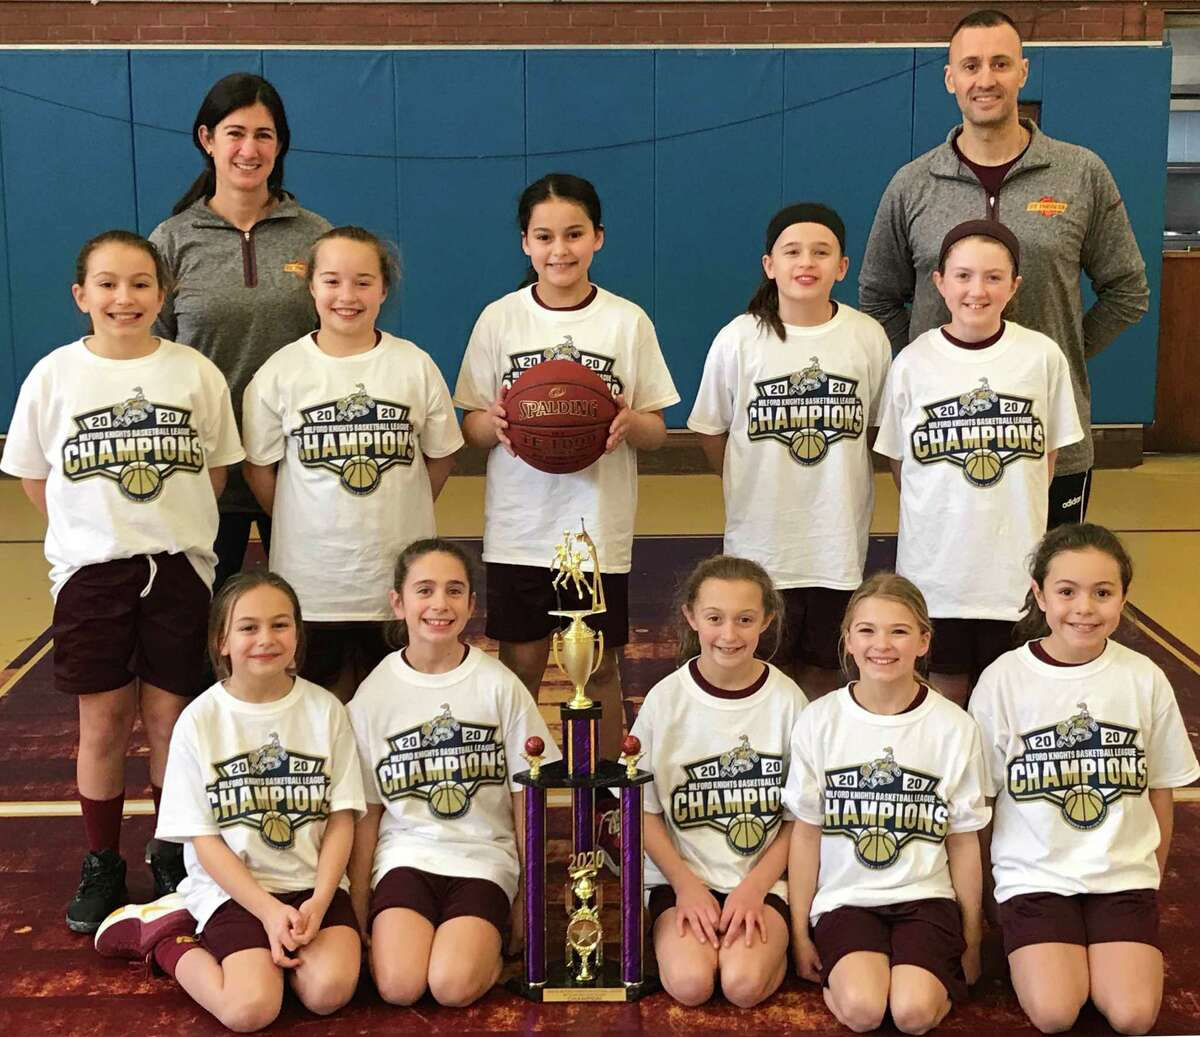 The St. Theresa's Parish 4th grade girls' basketball team won the Milford Knights League Gold Division Championship to complete an undefeated 11-0 season. Team members (front row) are: Lia Solustri, Samantha Russo, Ashlyn Delaney, Ava Buswell and Gianna Colon; (second row) Kelly Lungi, Harper Delaney, Francesca DiMarco, Gianna Holinko and Veronica Buckley; (third row) head coach Traci Sacco and assistant coach Frank DiMarco.